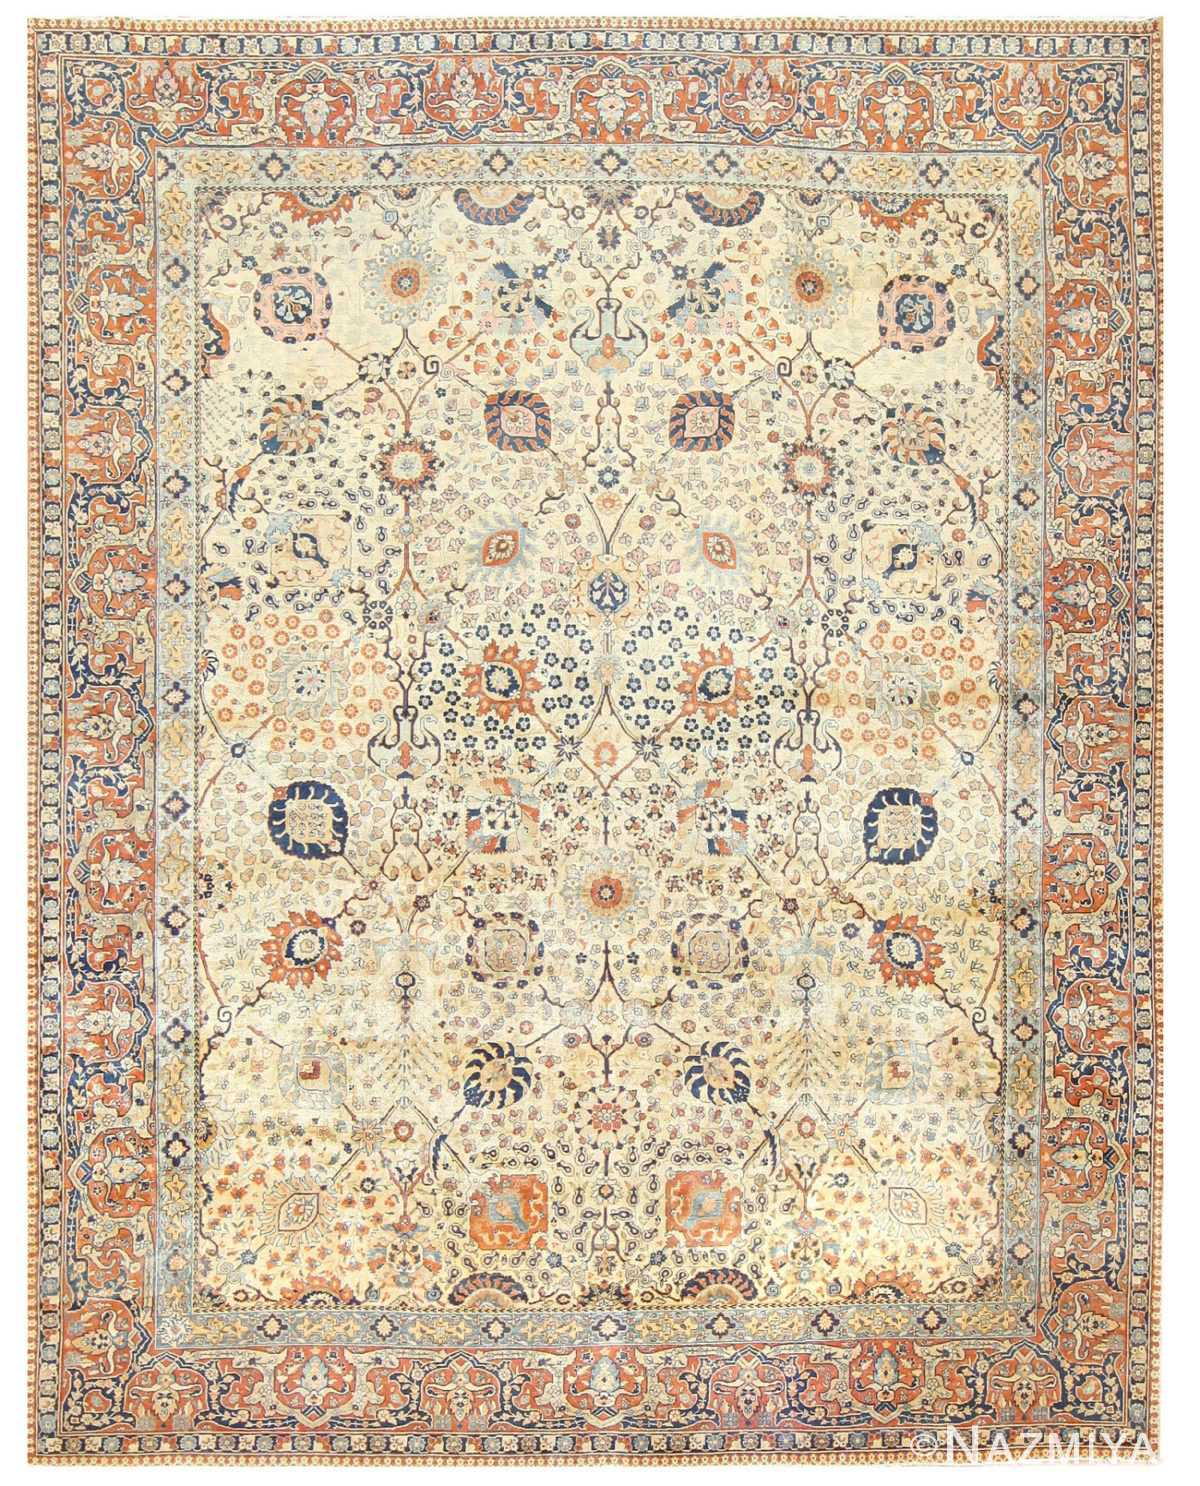 Vintage Persian Rugs: Antique Persian Tabriz Rug 50176 By Nazmiyal Collection